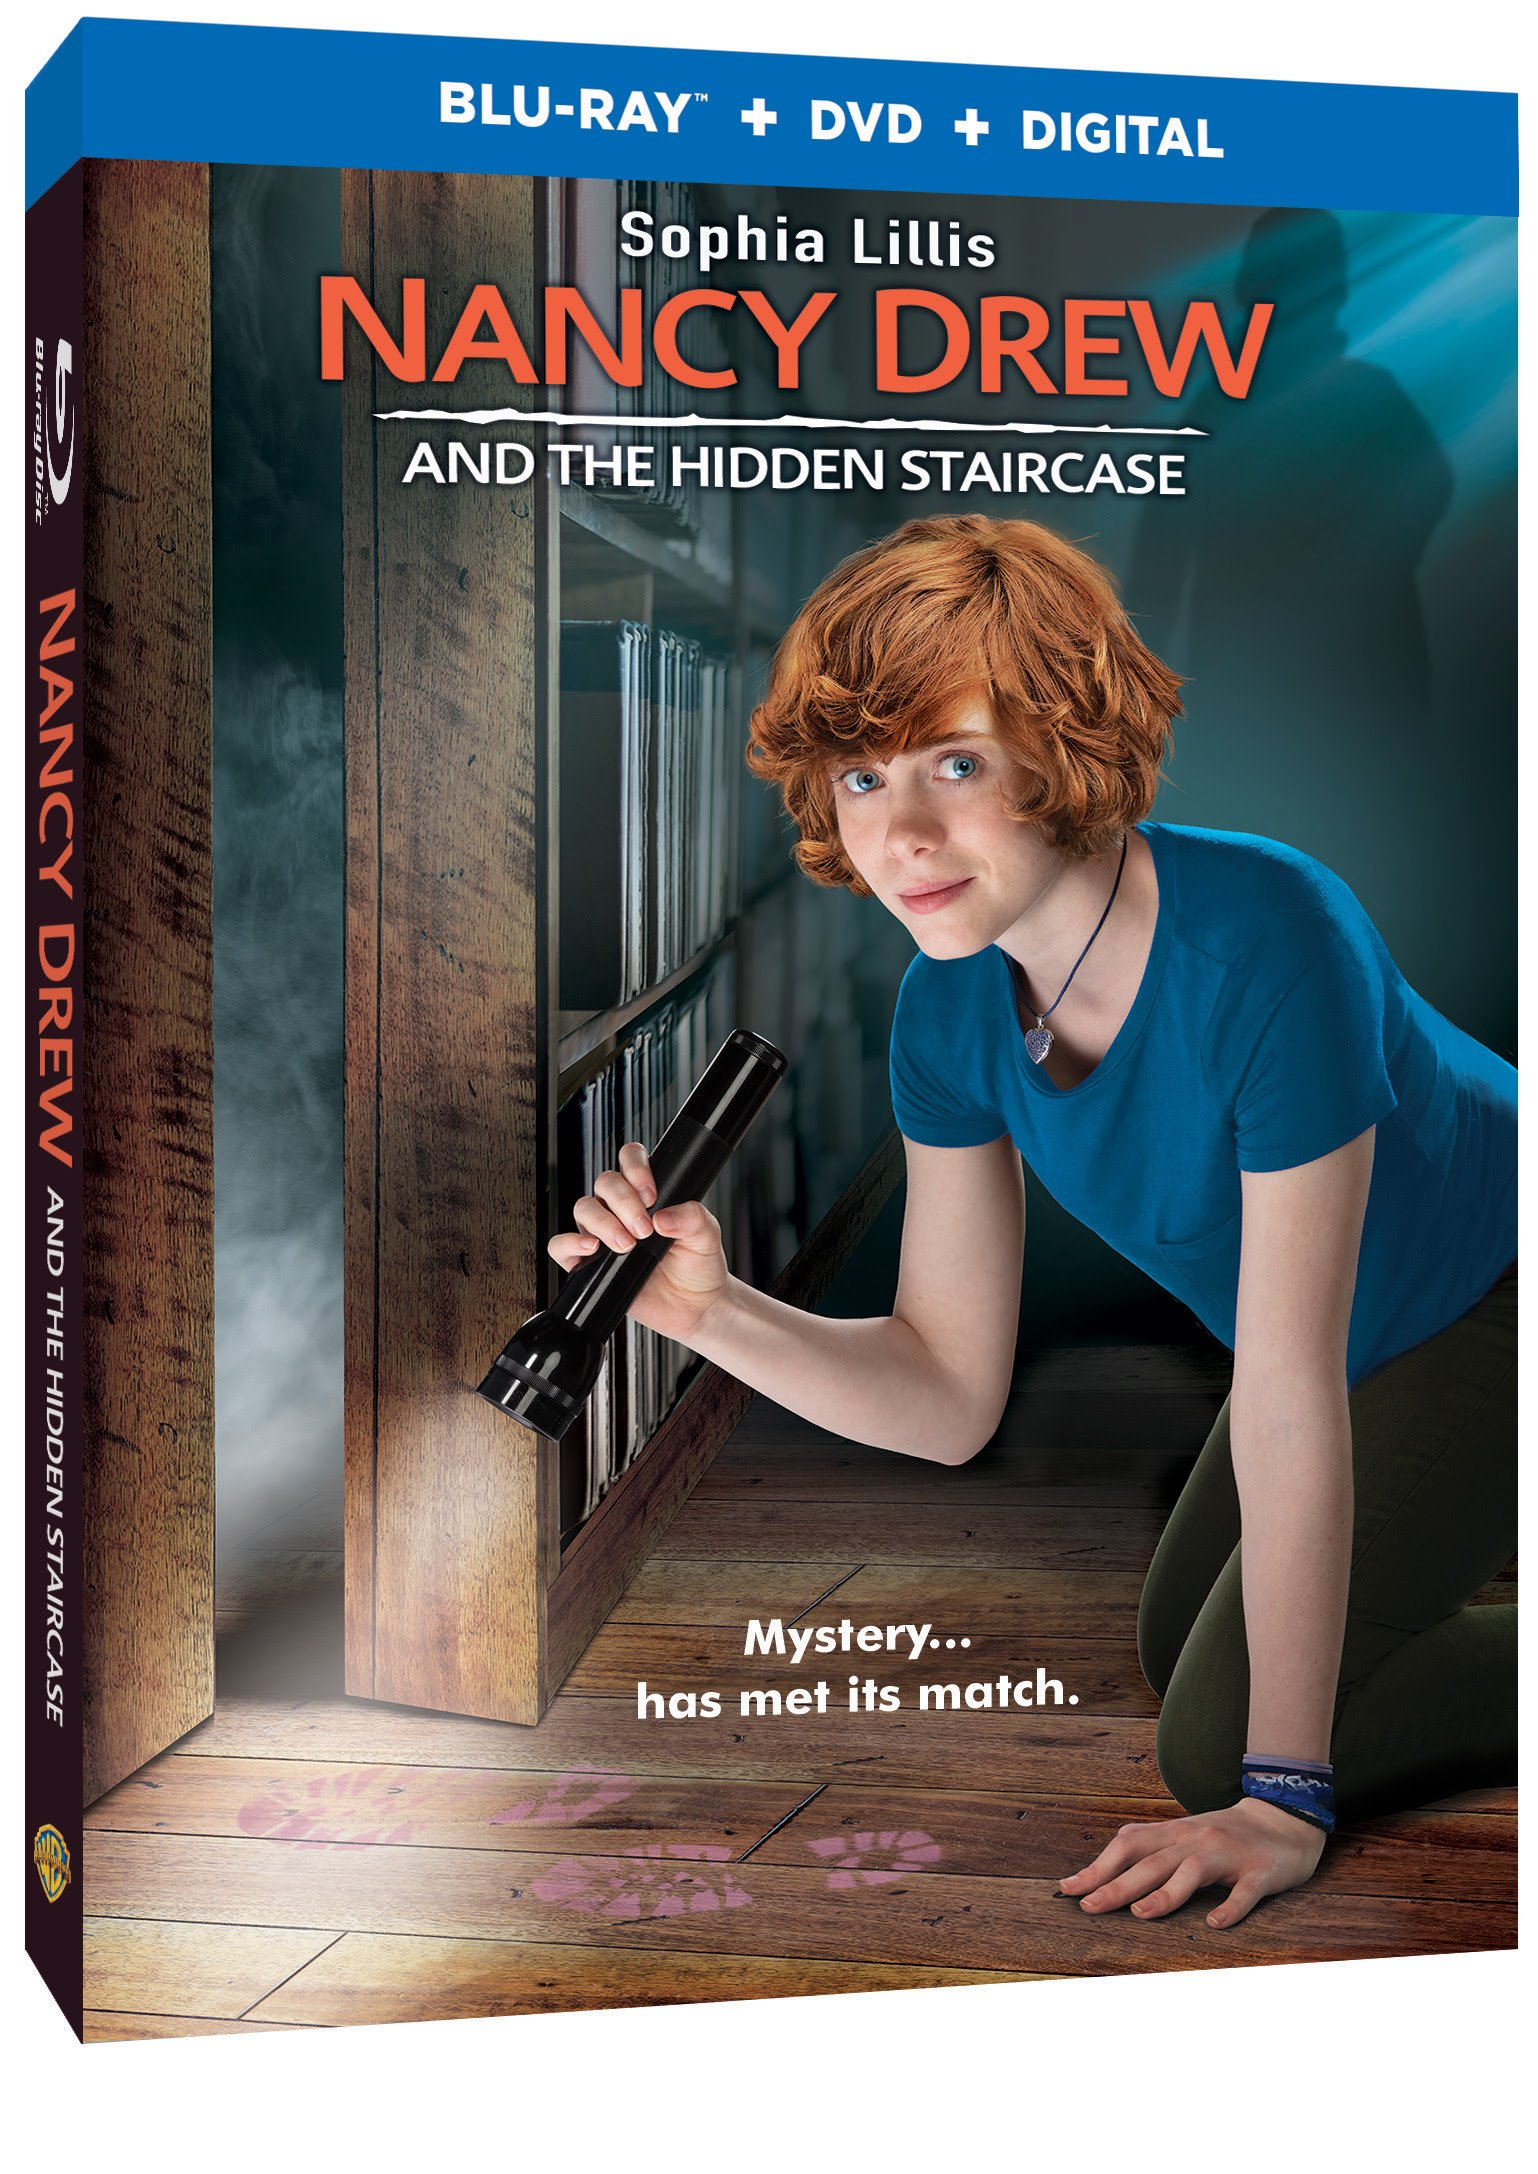 #NancyDrew #TheHiddenStaircase Thoughts & #giveaway